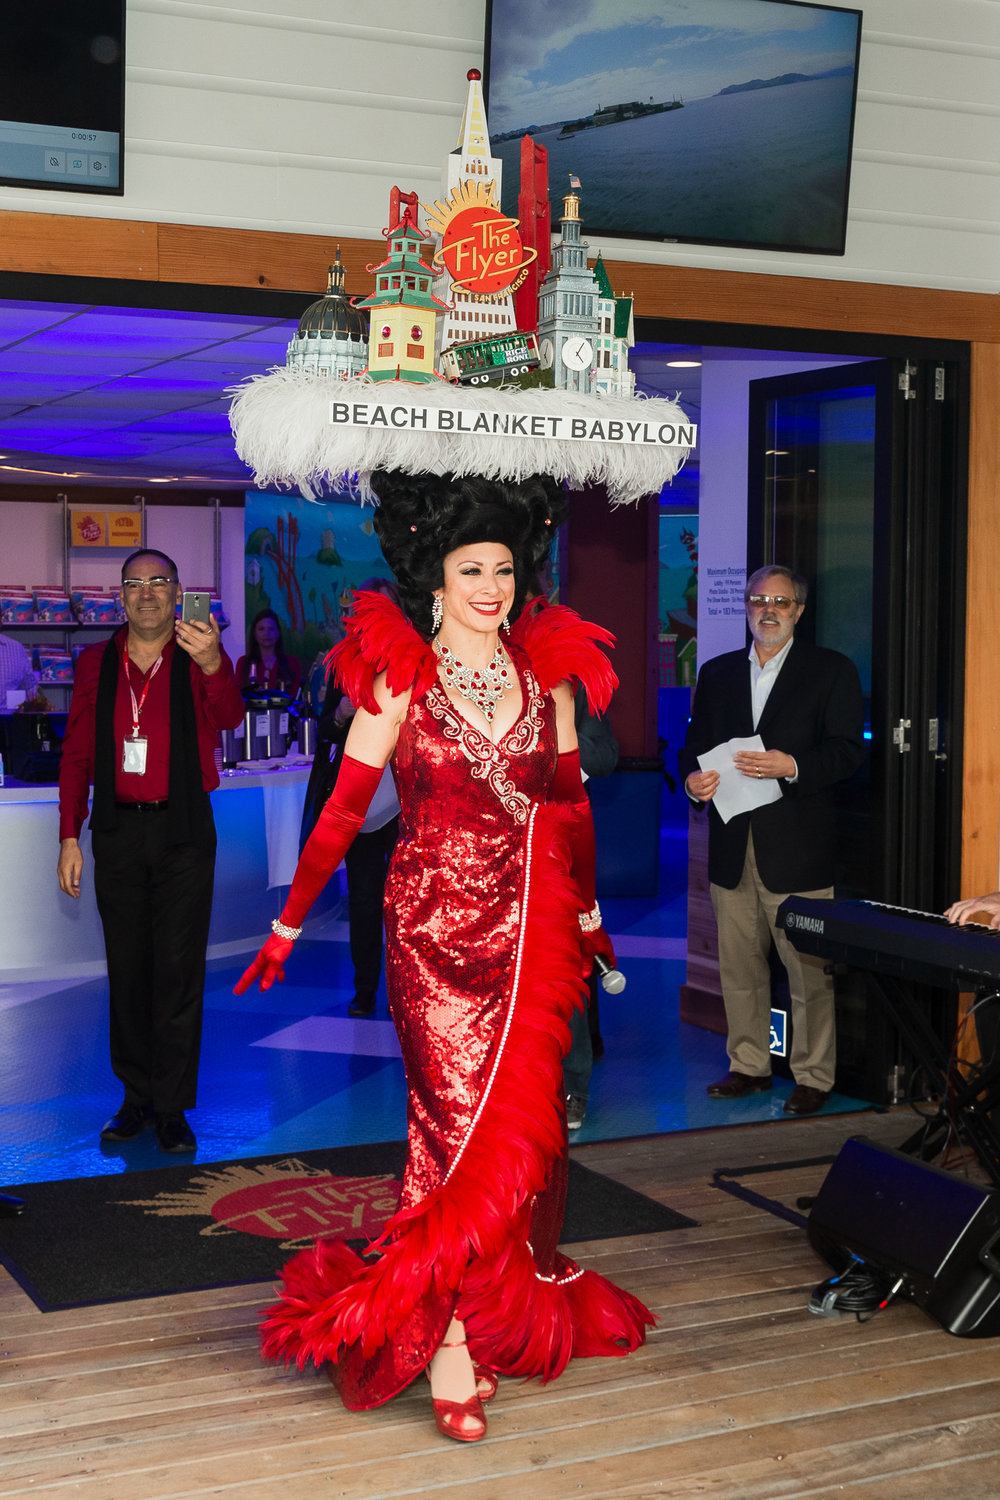 Steve Silver's Beach Blanket Babylon performs at the grand opening for The Flyer - San Francisco